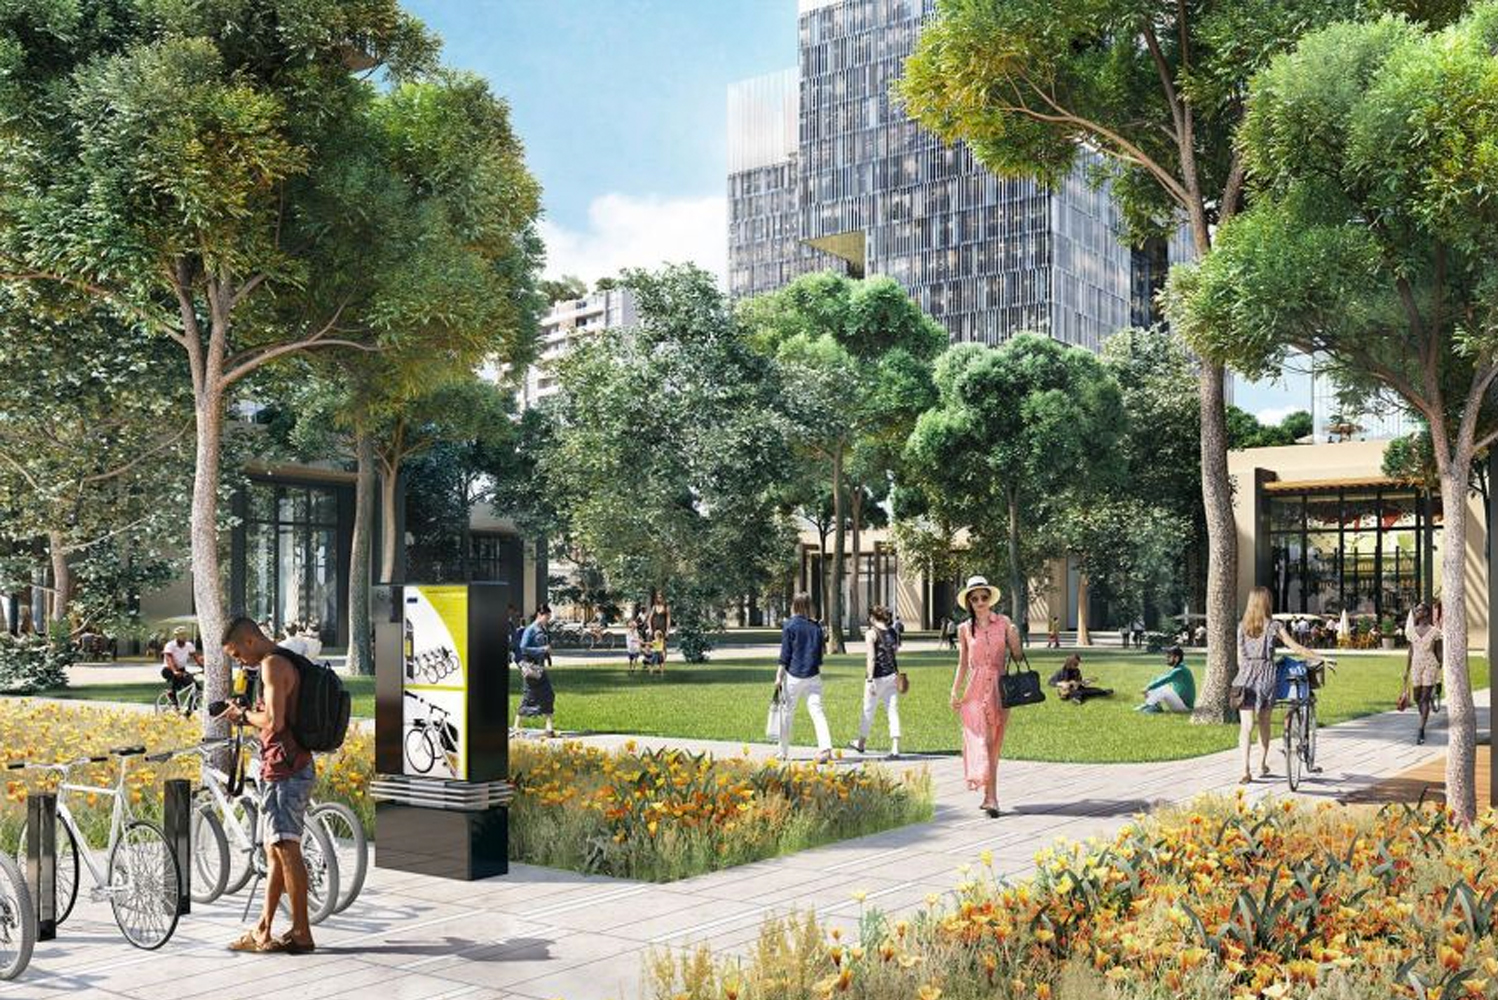 Design-wise, the district will promote a move away from non-motorized forms of transport. This will be facilitated by shaded streets designed for pedestrians and cyclists.